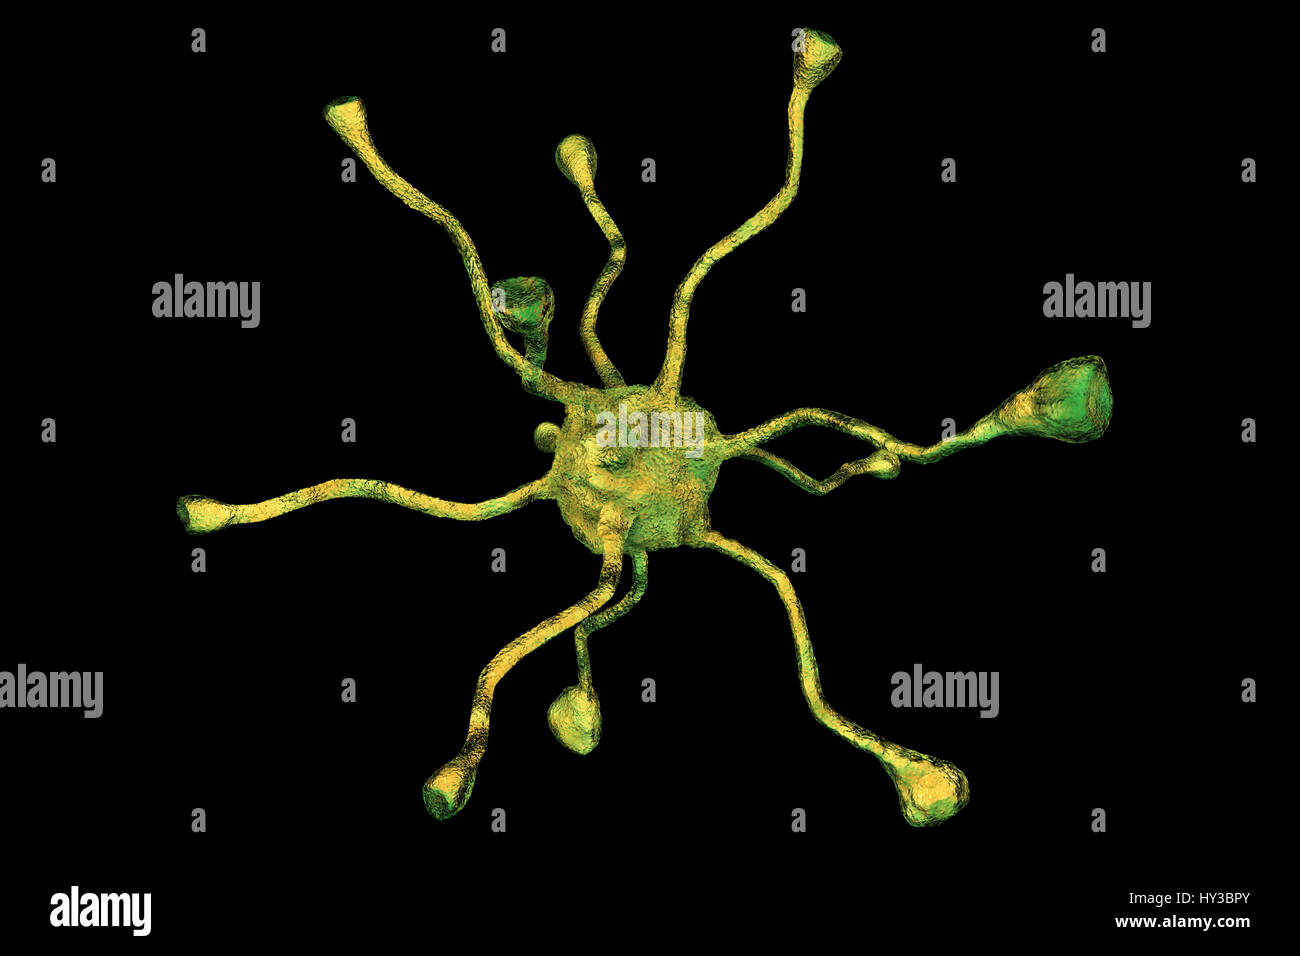 Nerve cell, or neuron, from the human brain, computer illustration. - Stock Image